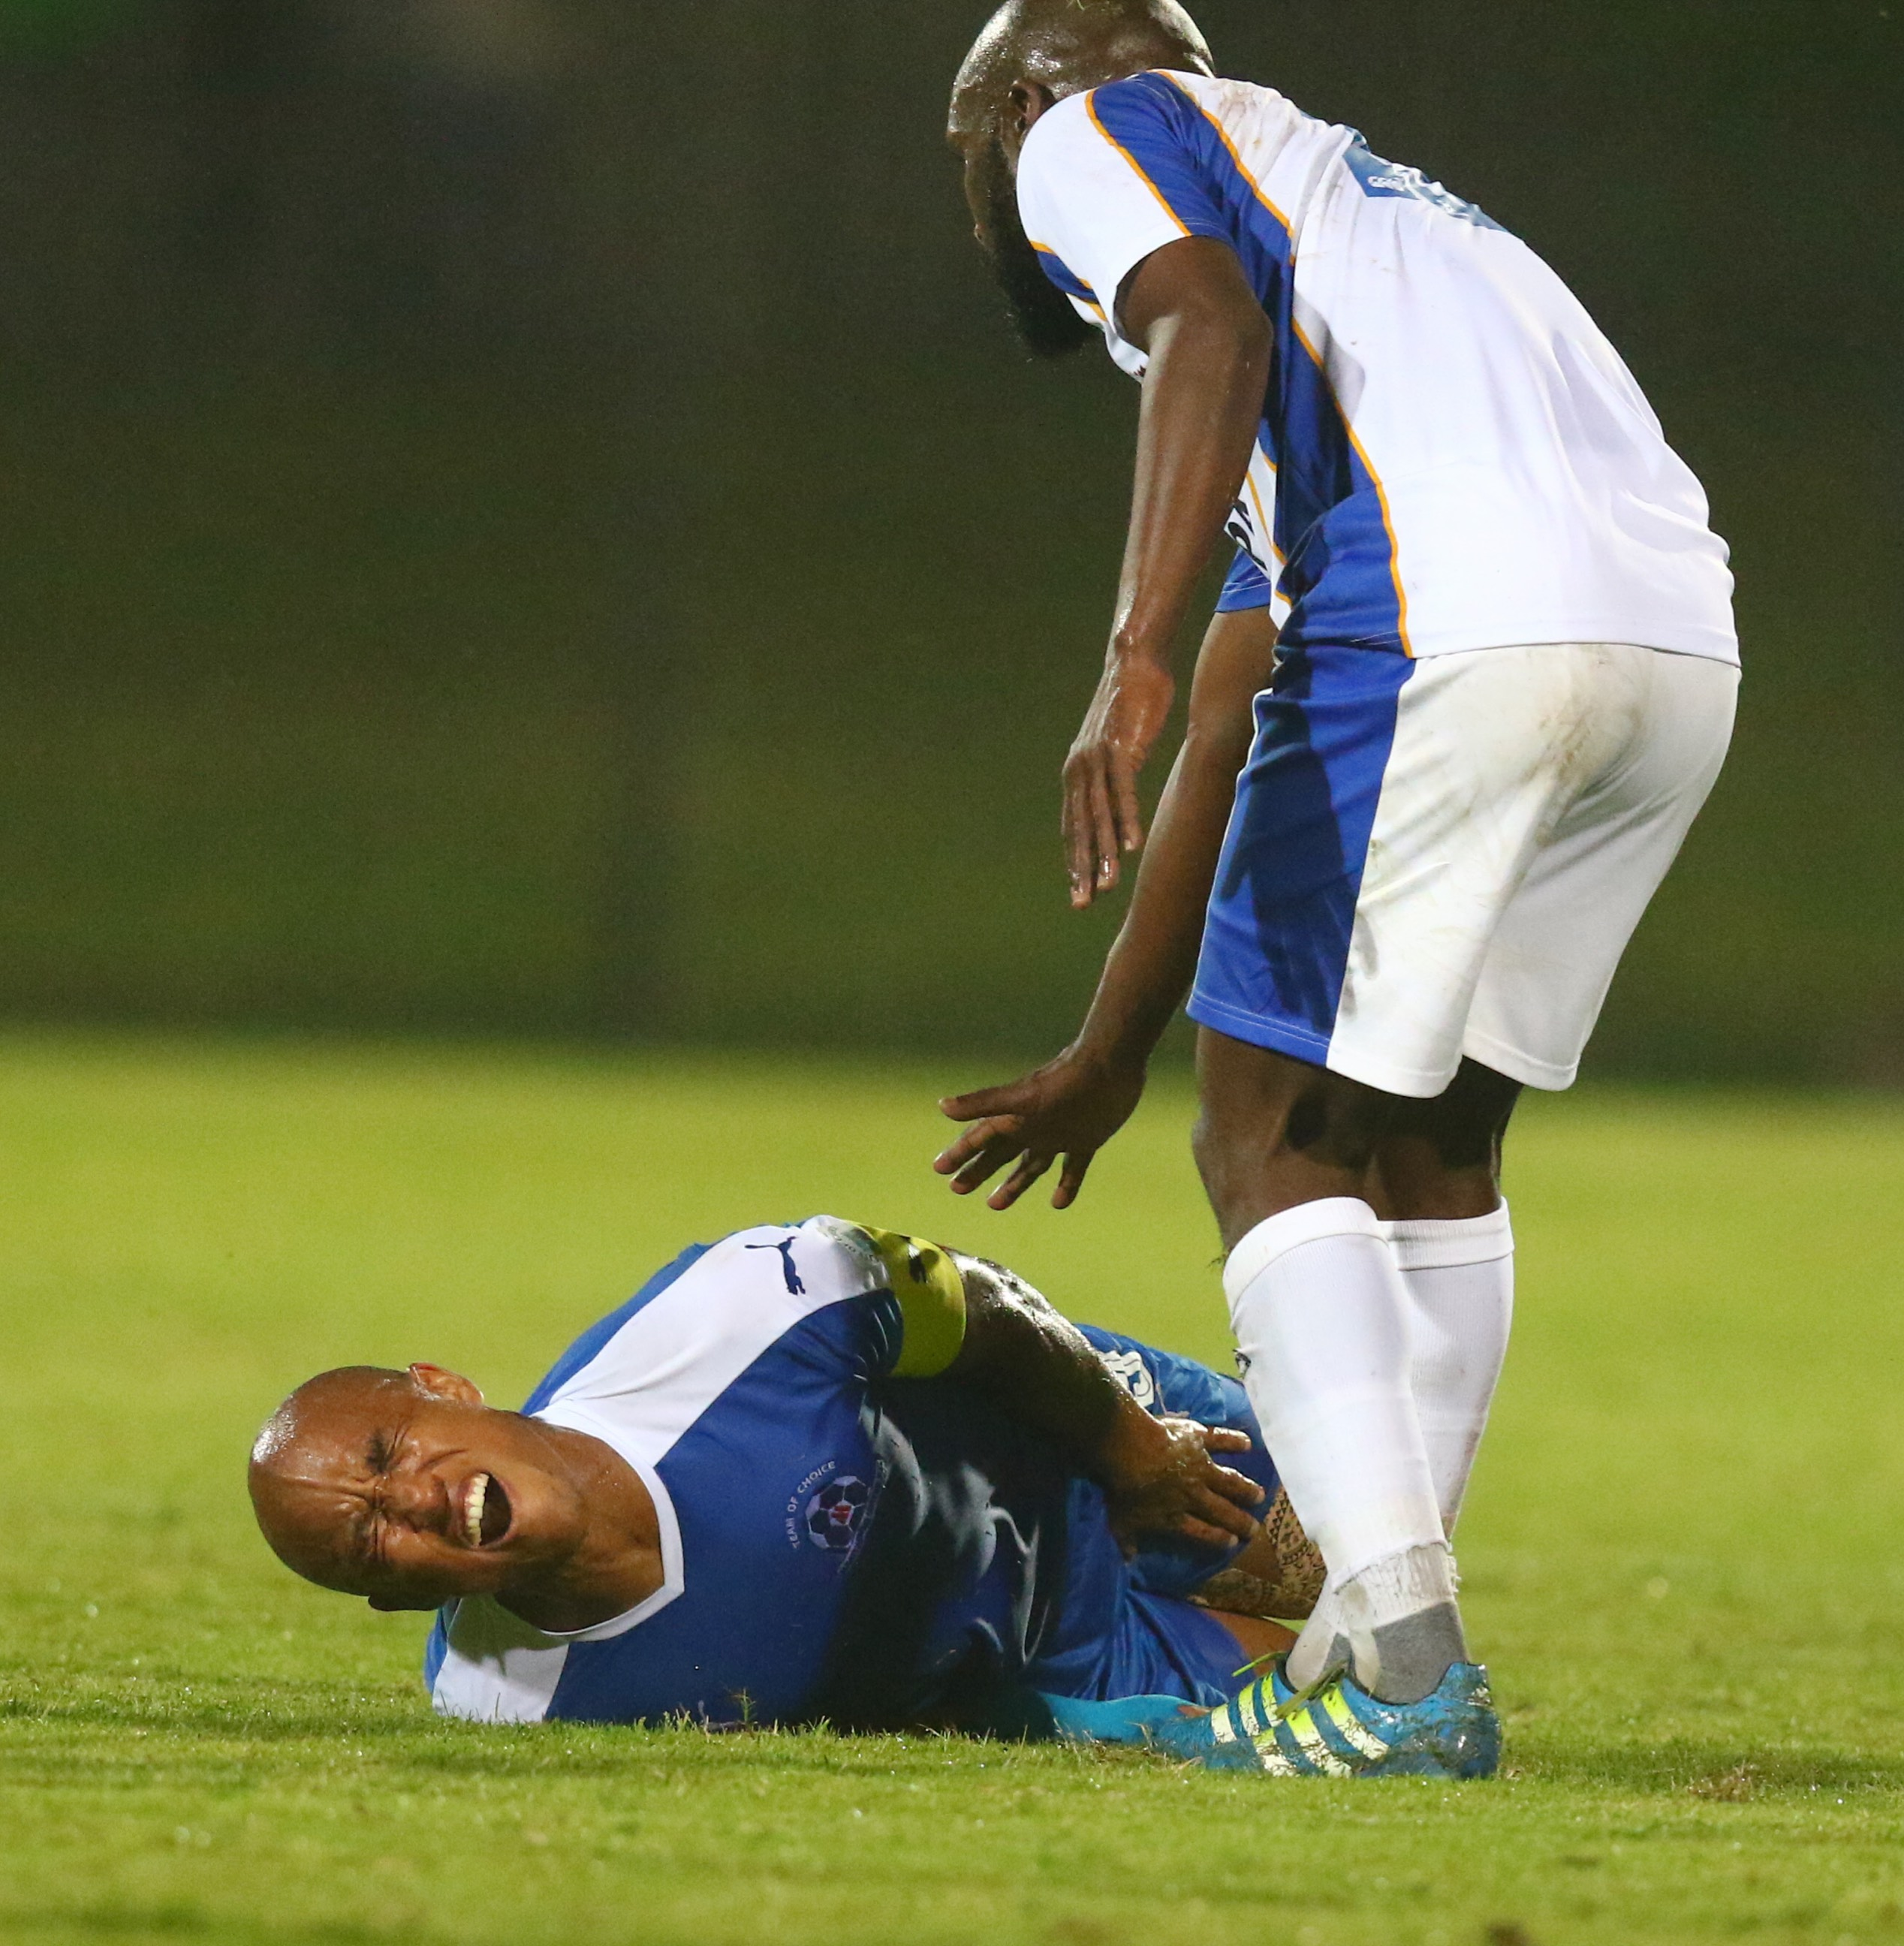 DURBAN, SOUTH AFRICA - NOVEMBER 29: Kurt Lentjies lies injured during the Absa Premiership match between Maritzburg United and Chippa United at Harry Gwala Stadium on November 29, 2016 in Durban, South Africa. (Photo by Anesh Debiky/Gallo Images)